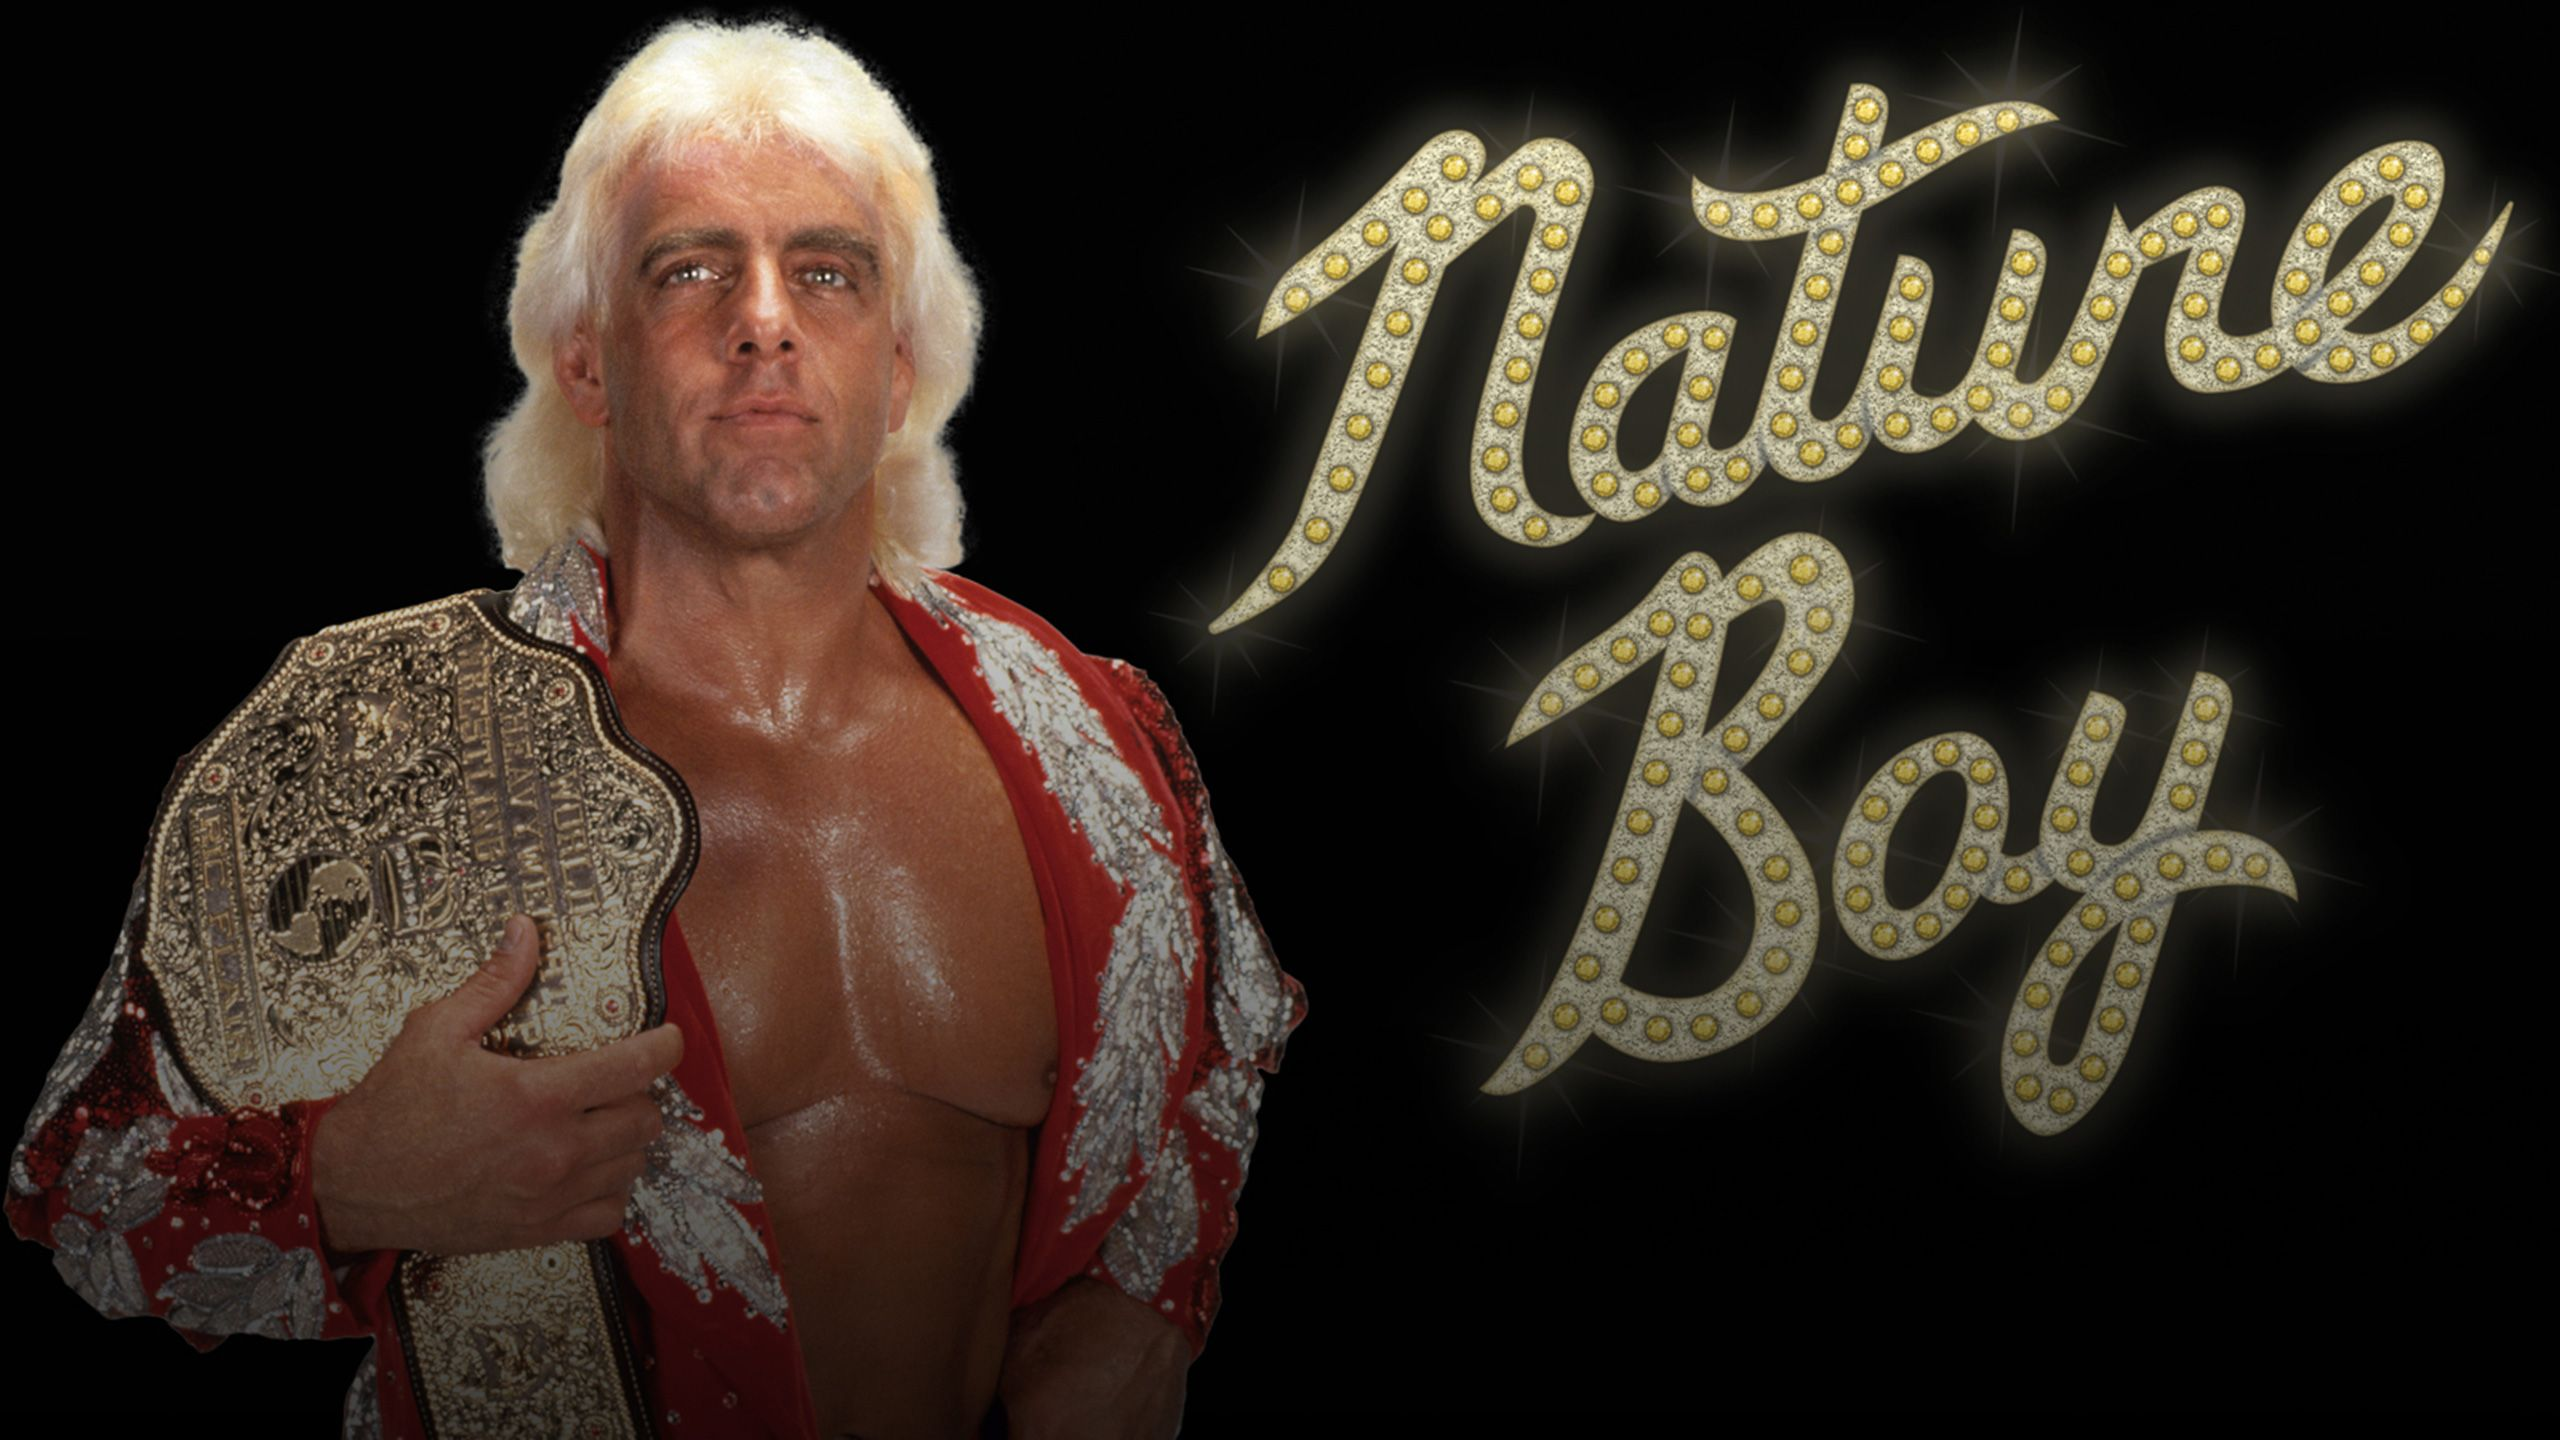 30 For 30: Nature Boy Presented by MINI